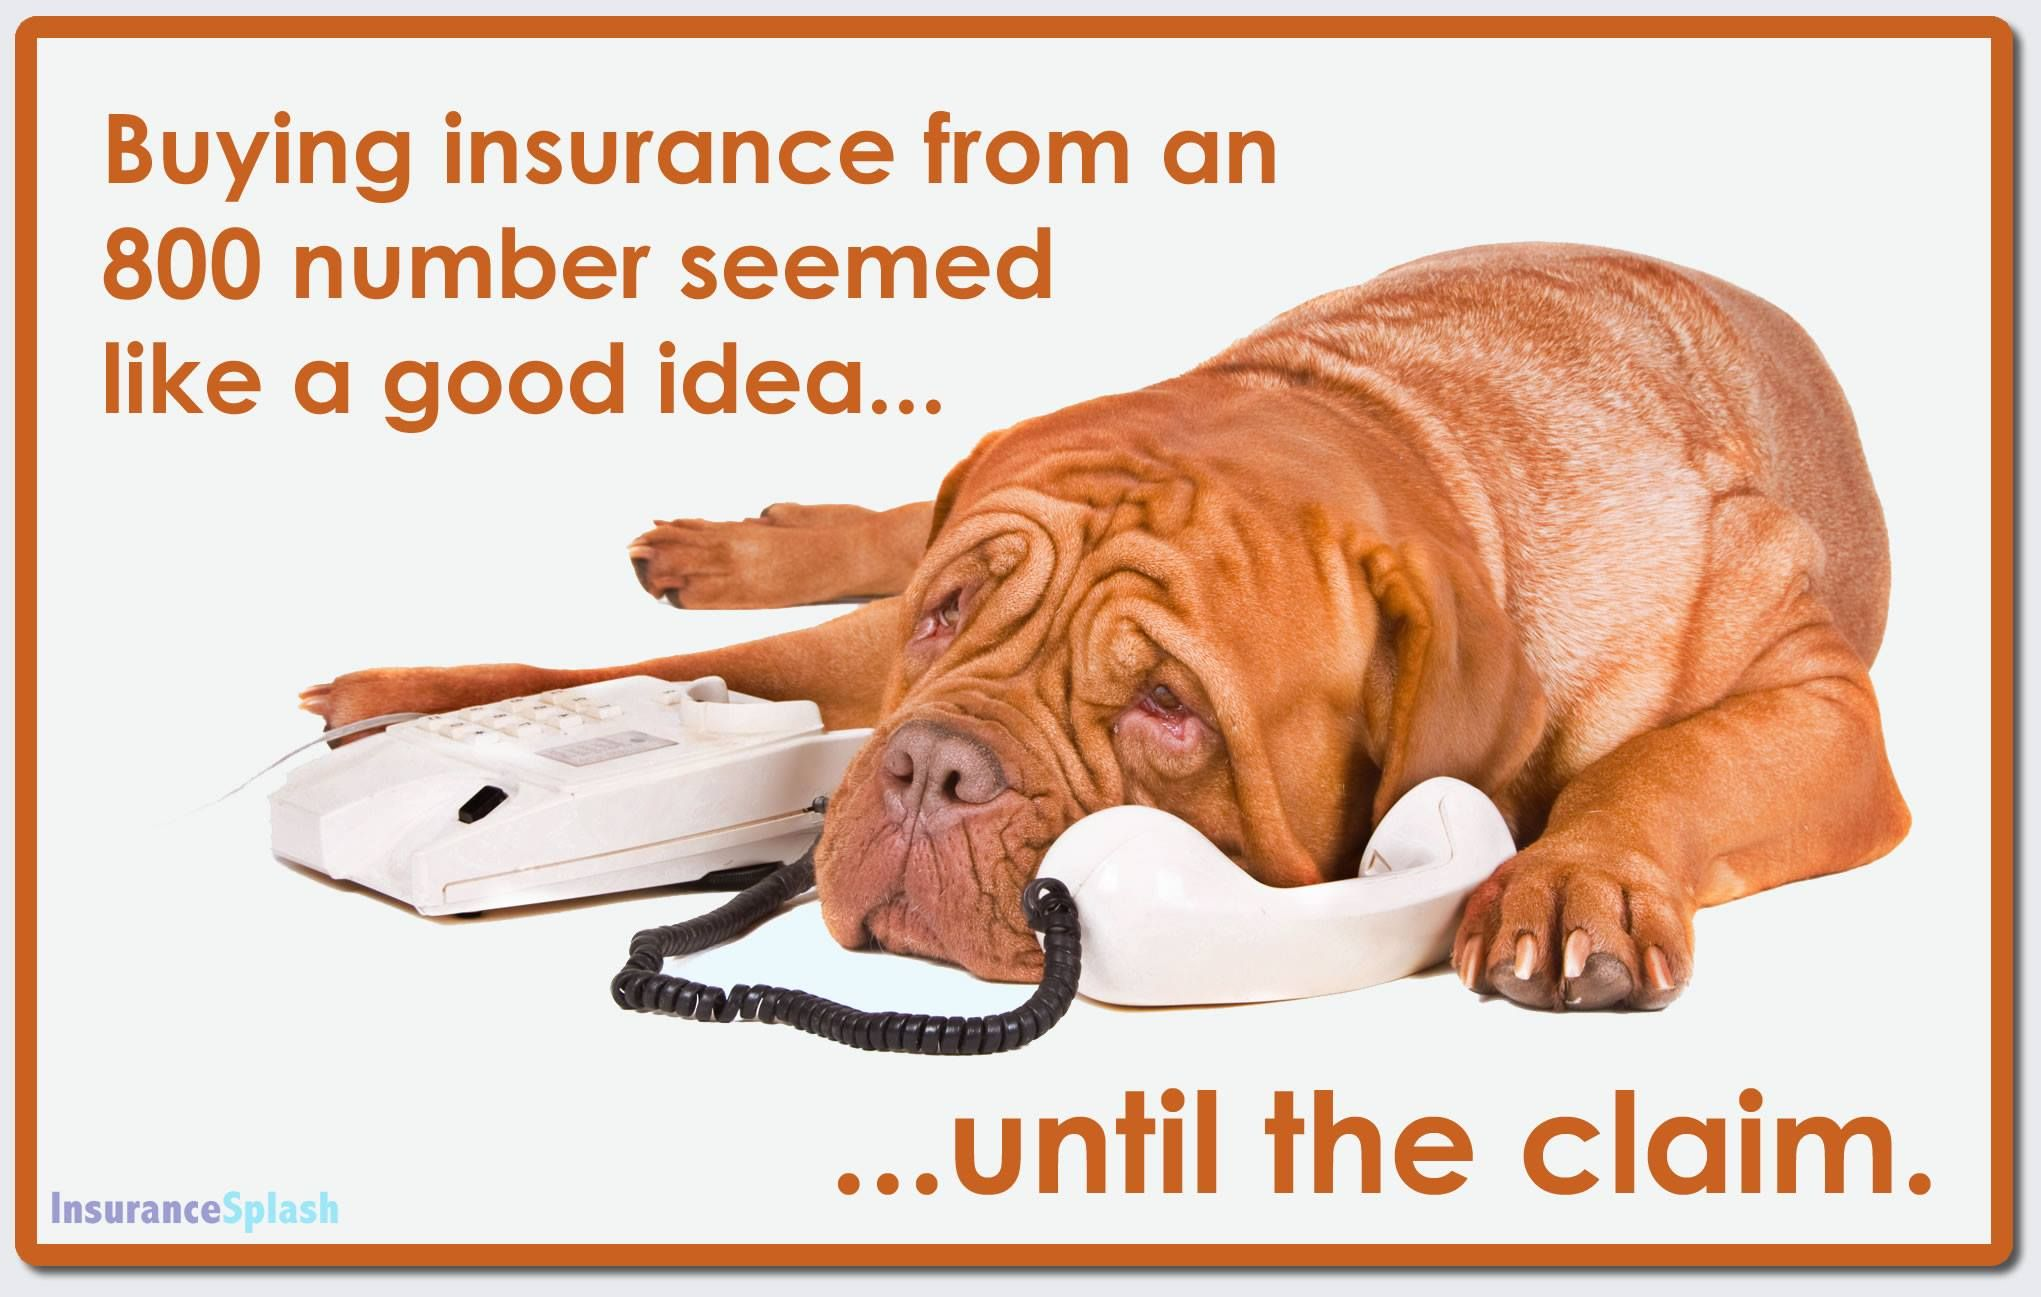 Guess how much experience do call-center reps have with insurance claims? ZERO. Buying insurance online may seem convenient at the time of purchase, but it's when you NEED it the most that a local agent's service is invaluable. There's no need to choose between having great insurance coverage at affordable rates... our clients get both!  #InsuranceHumor via @insurancesplash